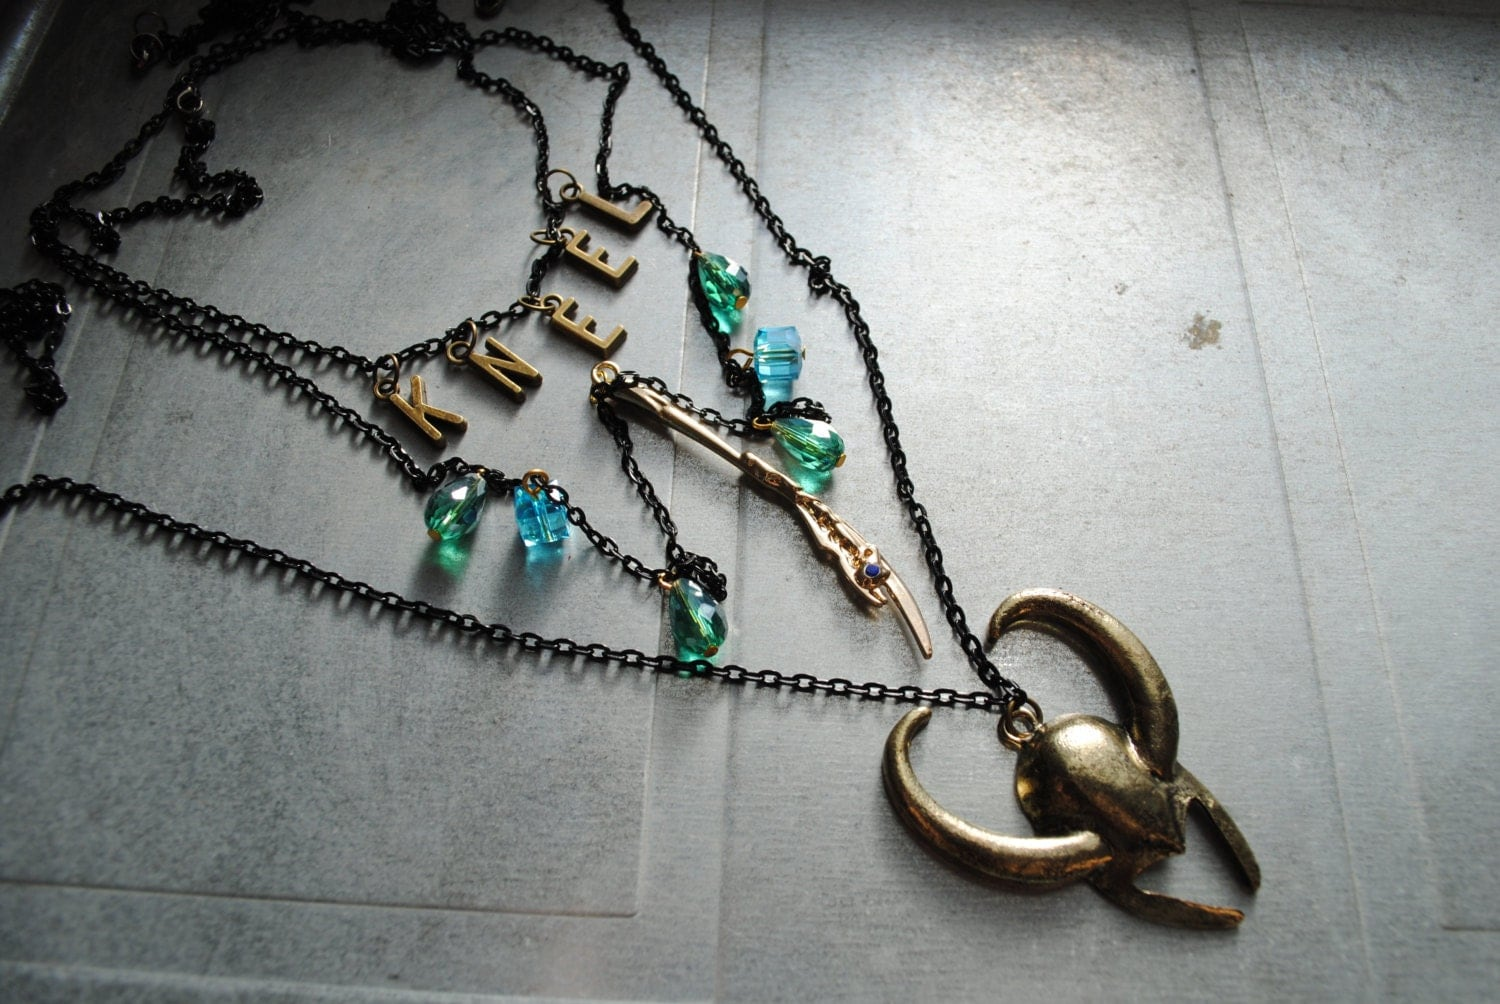 loki 3 necklace set age of jewelry collection